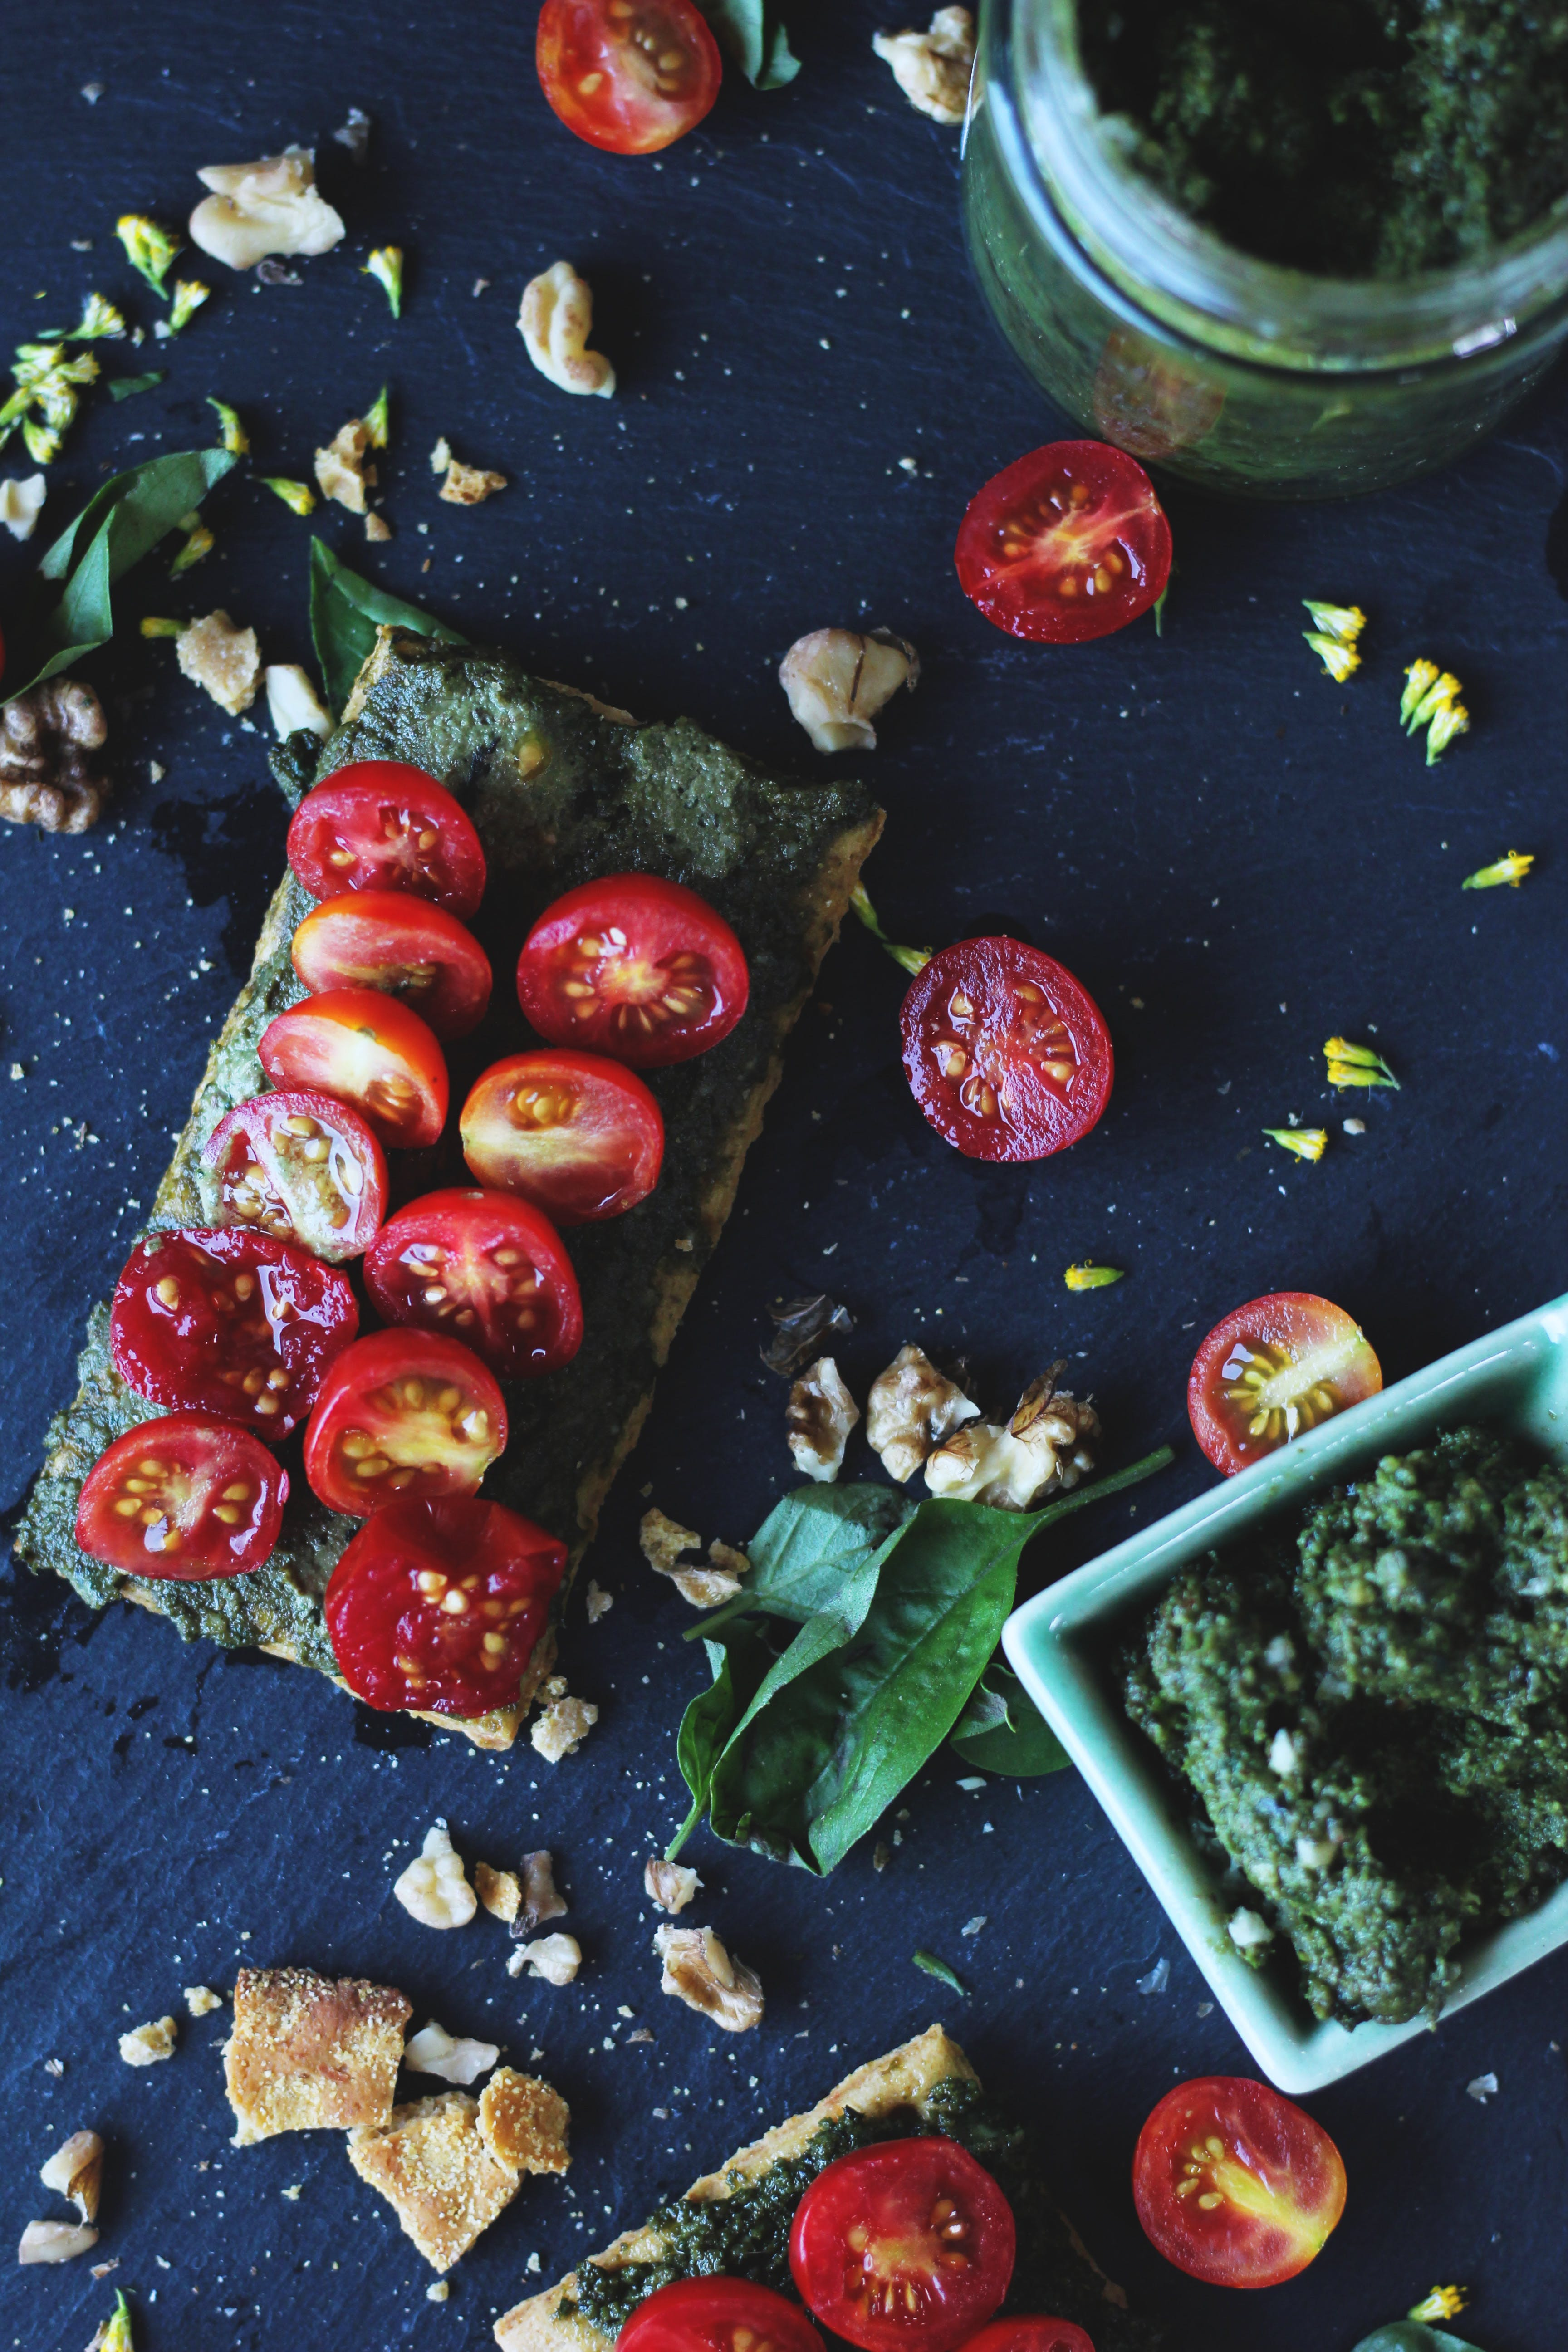 Sliced Tomatoes and Herbs